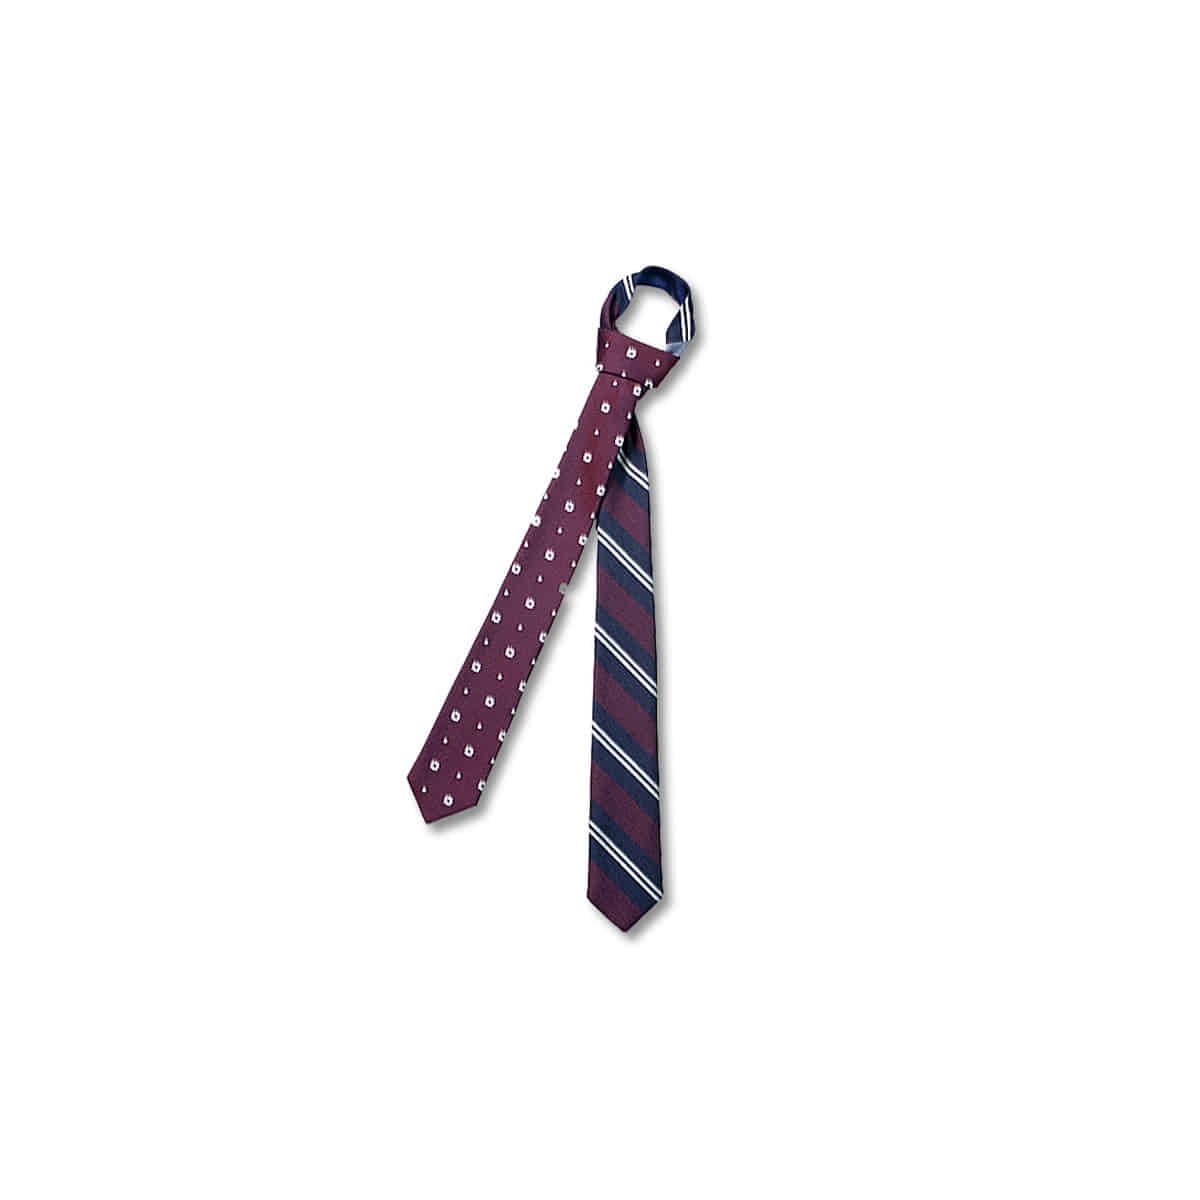 [KENNETH FIELD] 4 FACE TIE 2REGIMENTAL x SMALL PRINT x SOLID 'BURGUNDY'